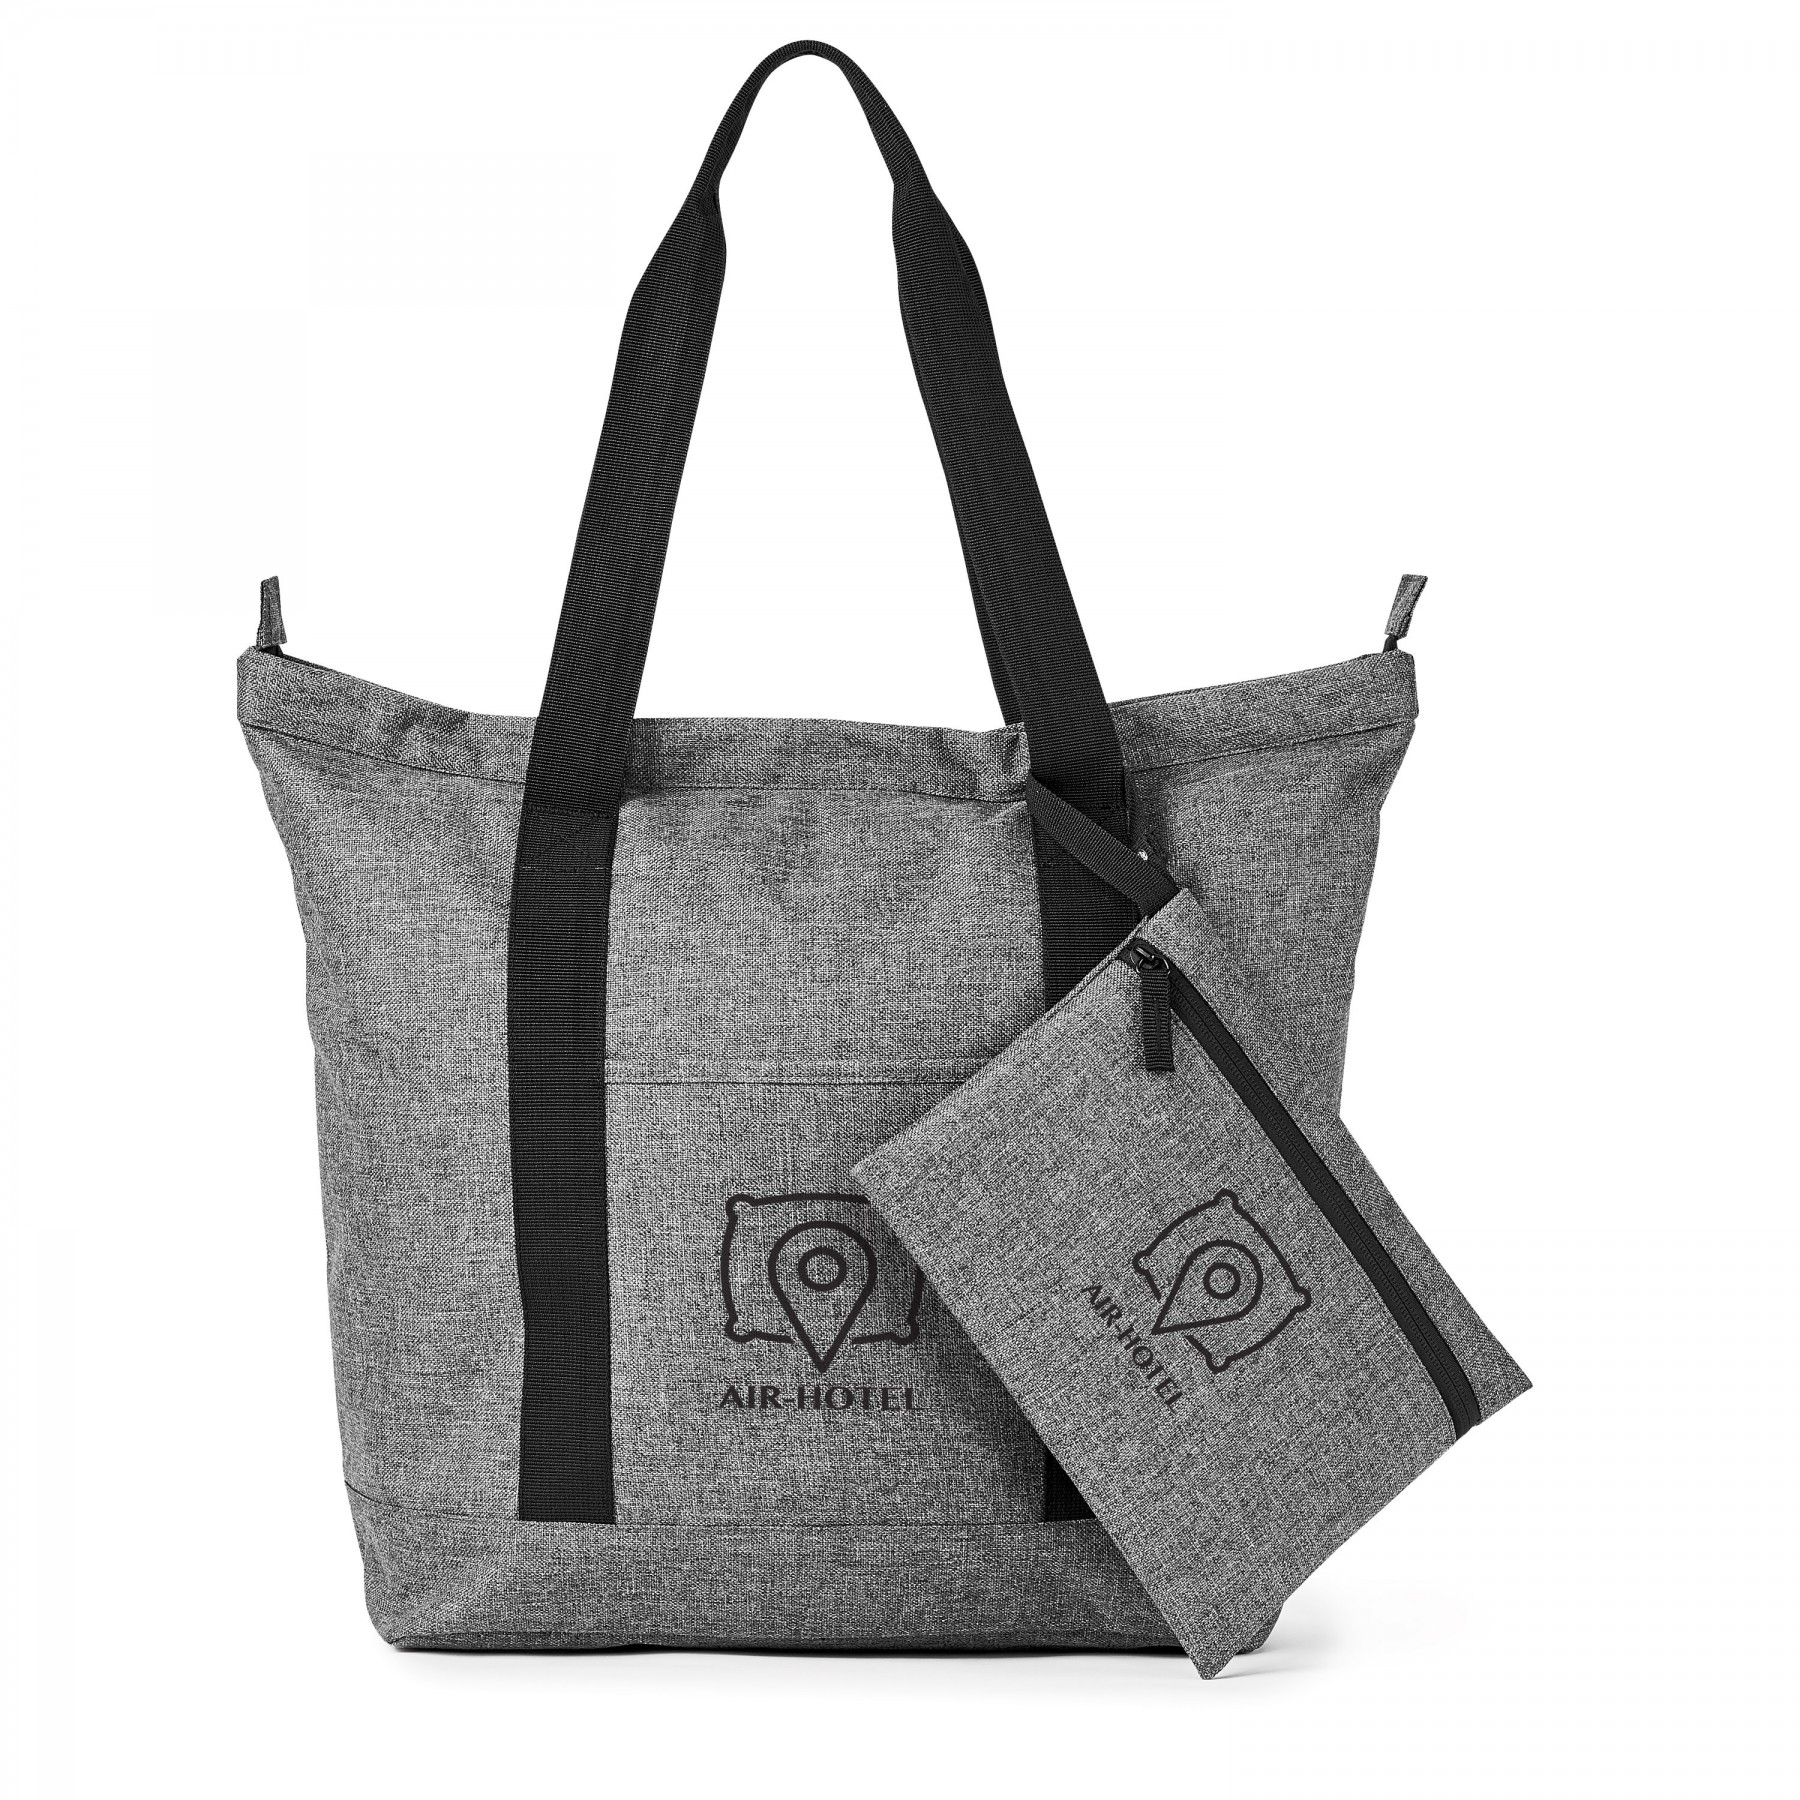 Nomad Must Haves Tote, BG501, One Colour Imprint